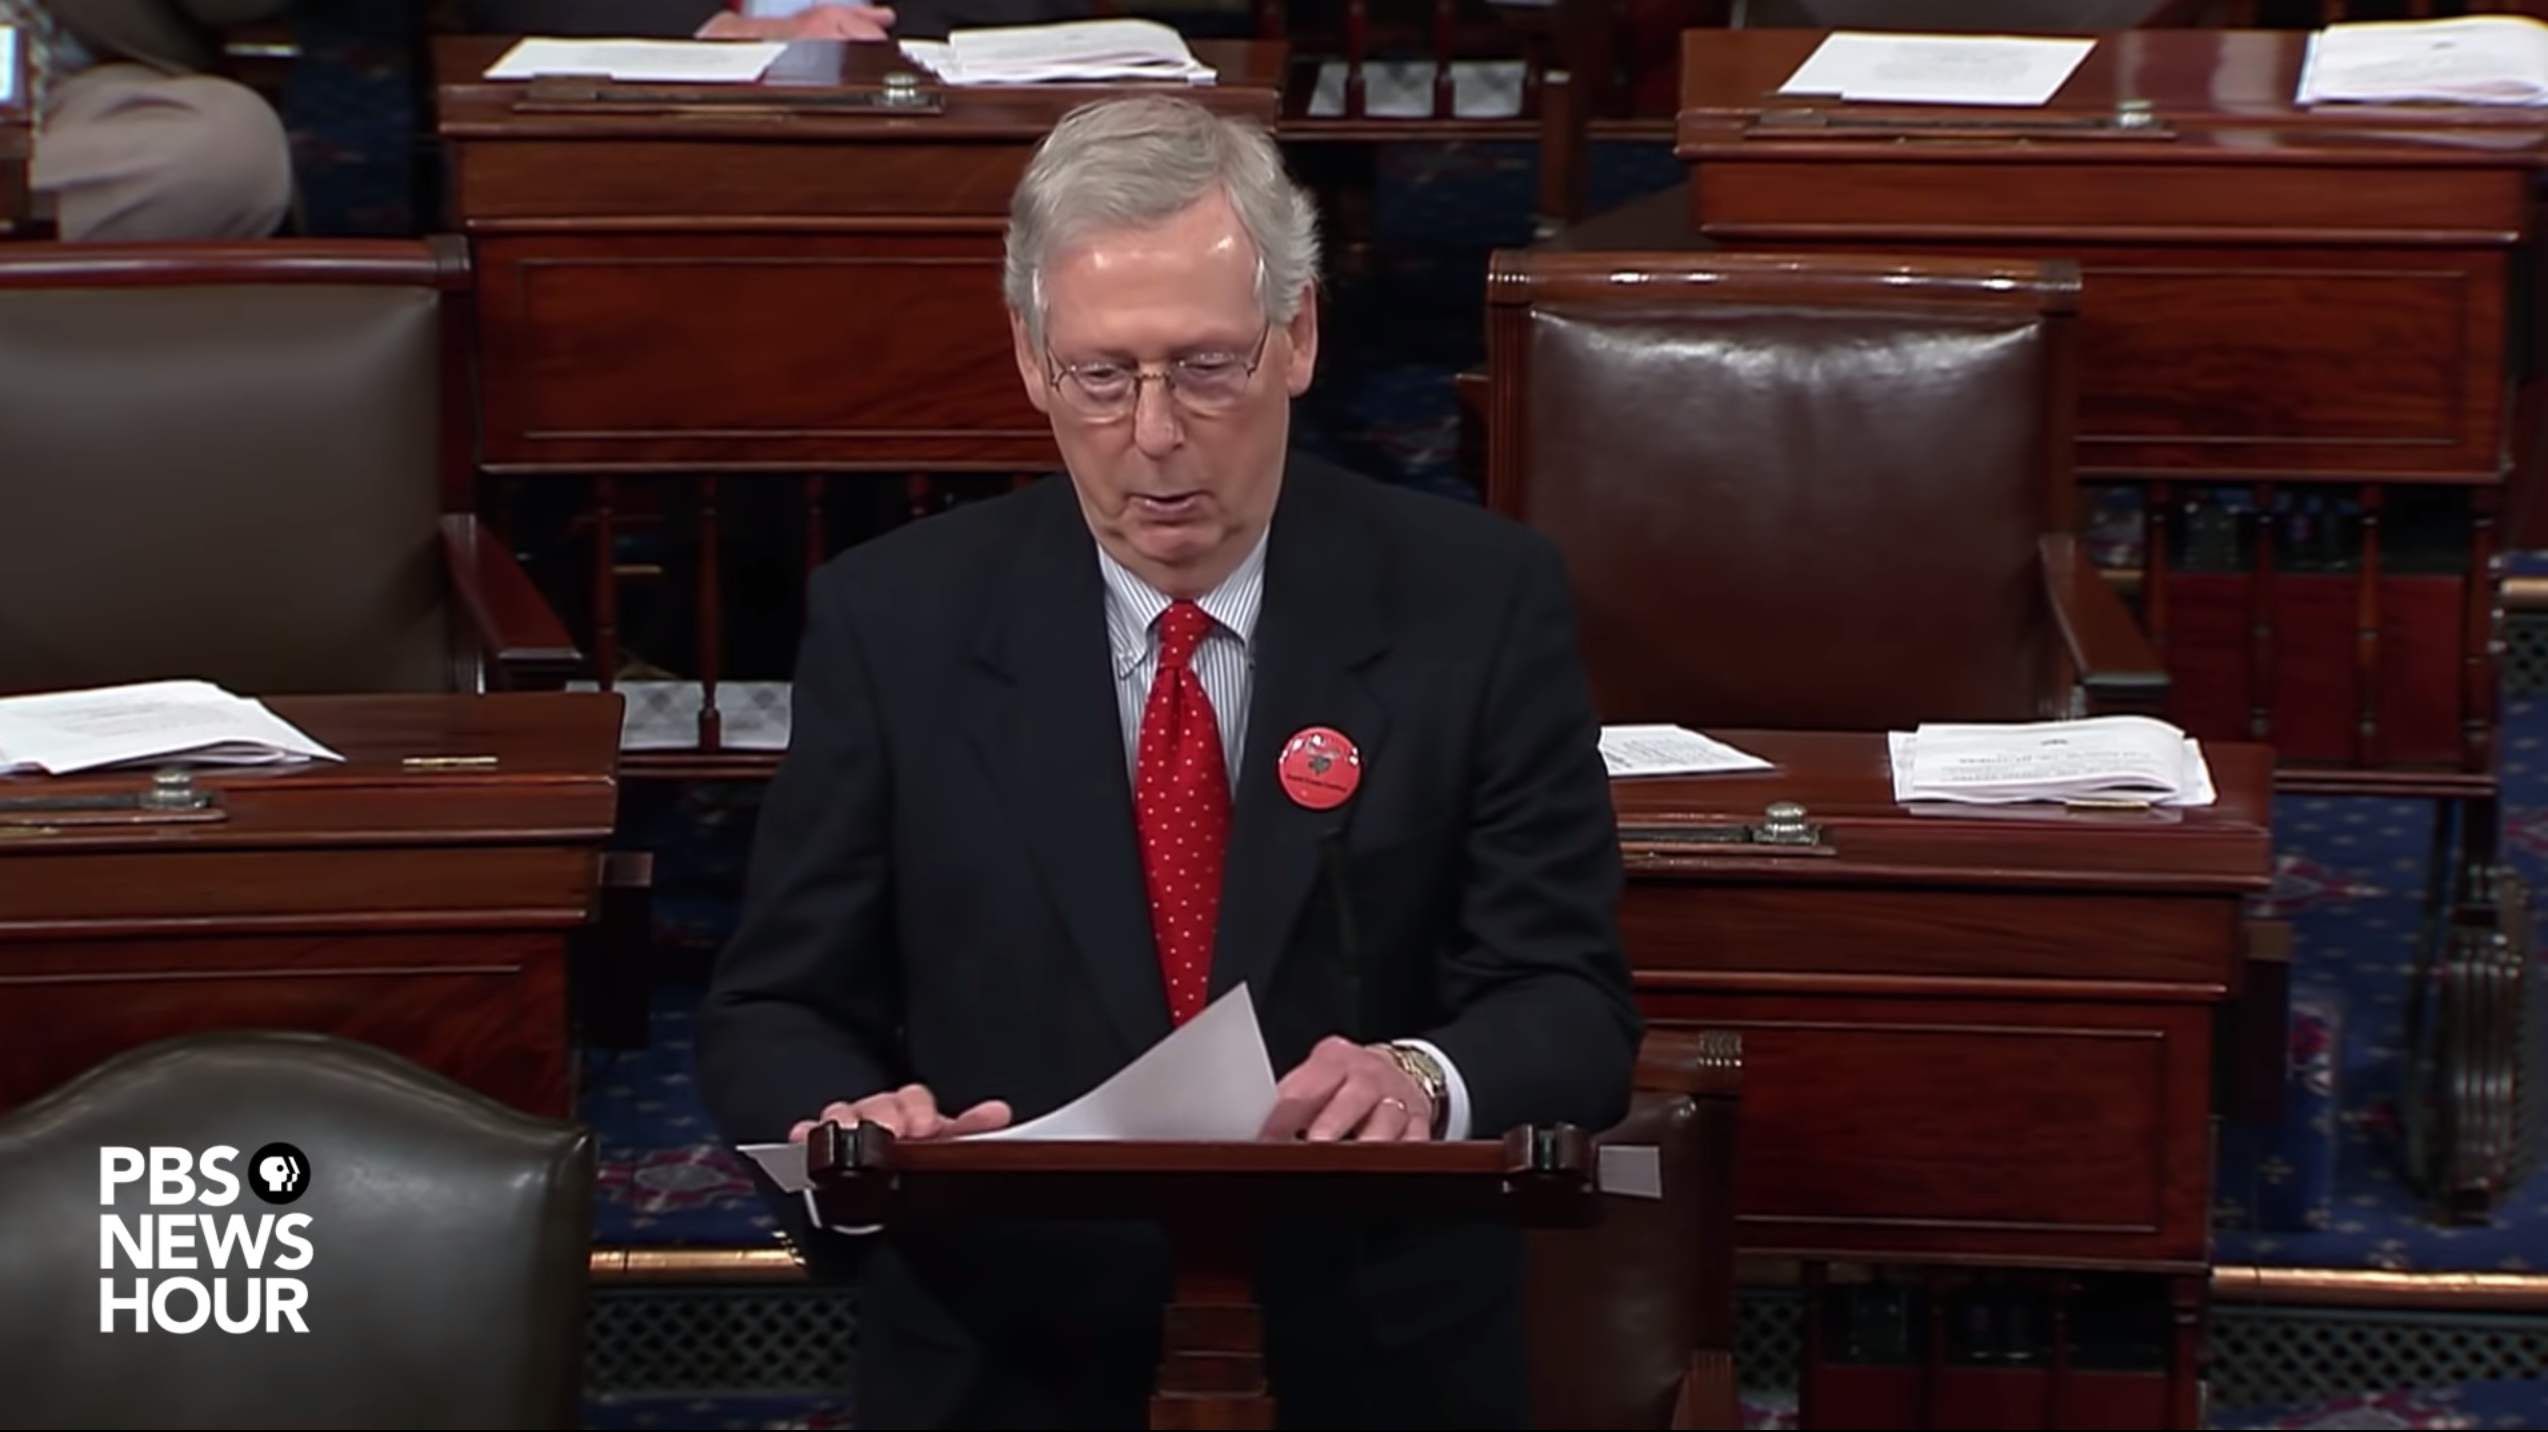 Mitch McConnell on Floor of the Senate / PBS News Hour YouTube Screen Shot